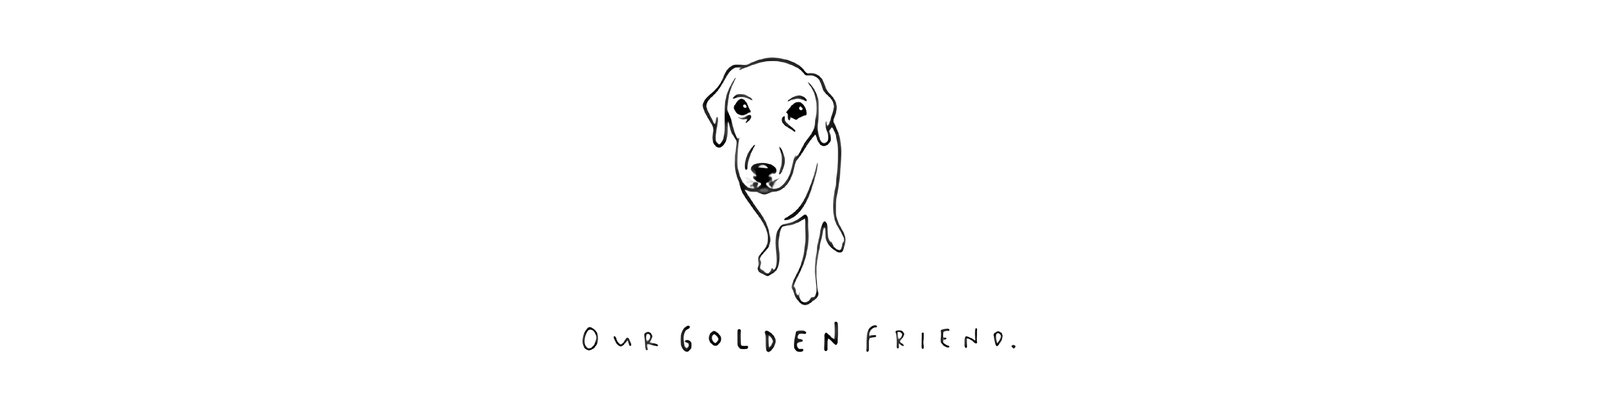 Our Golden Friend